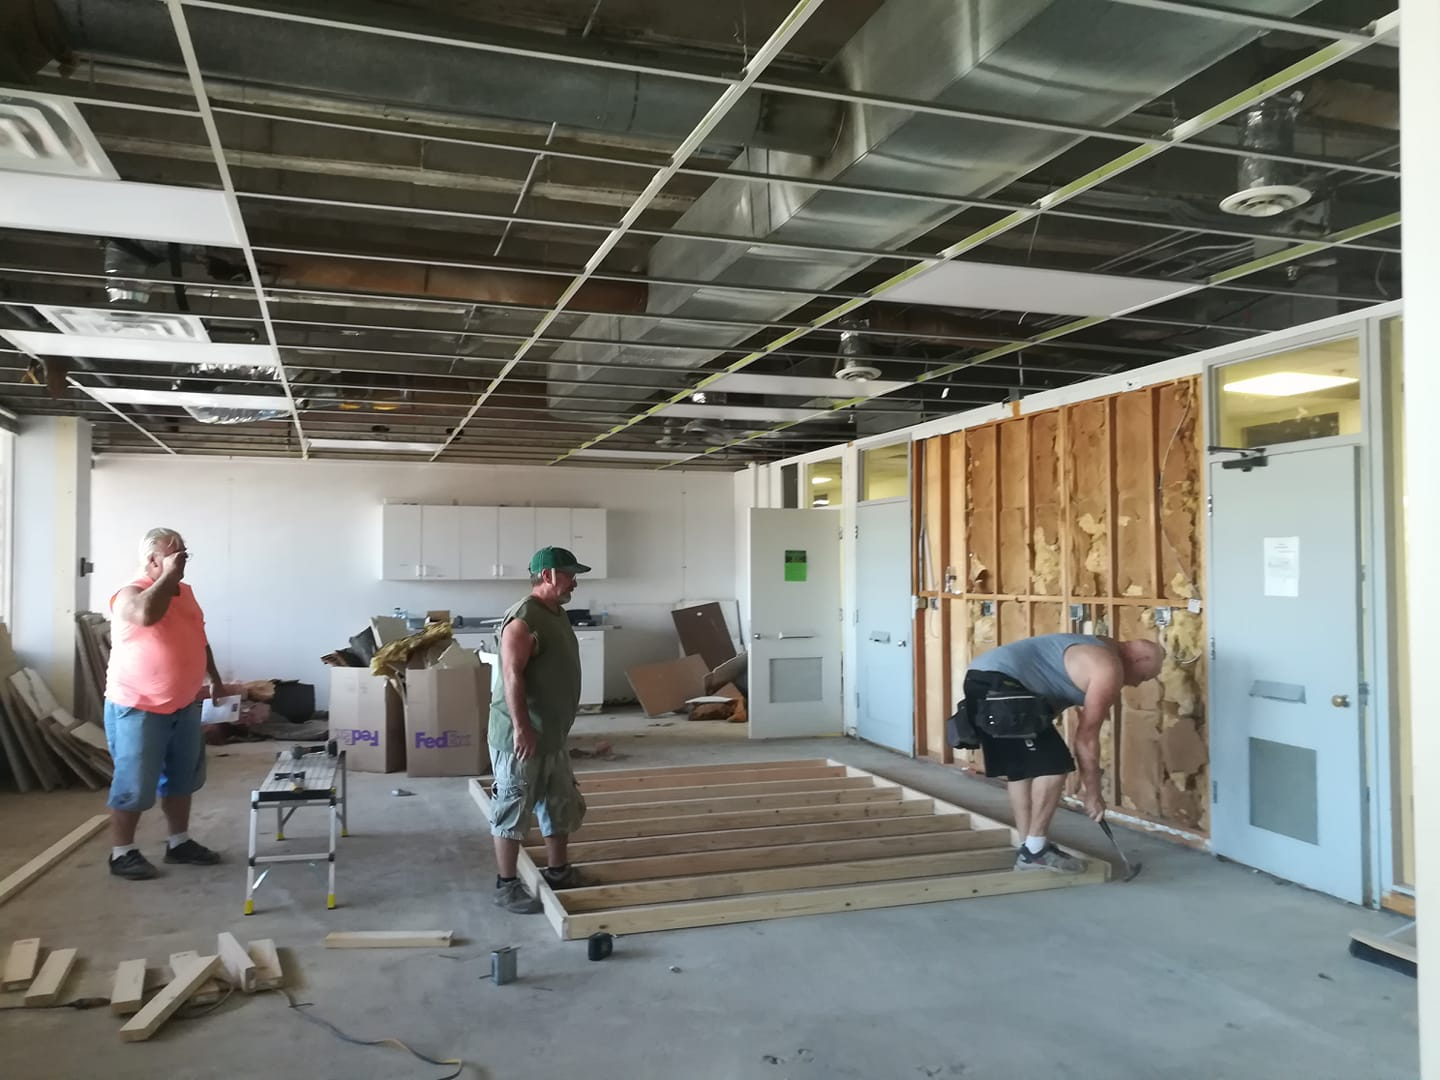 Construction of the culinary arts classroom